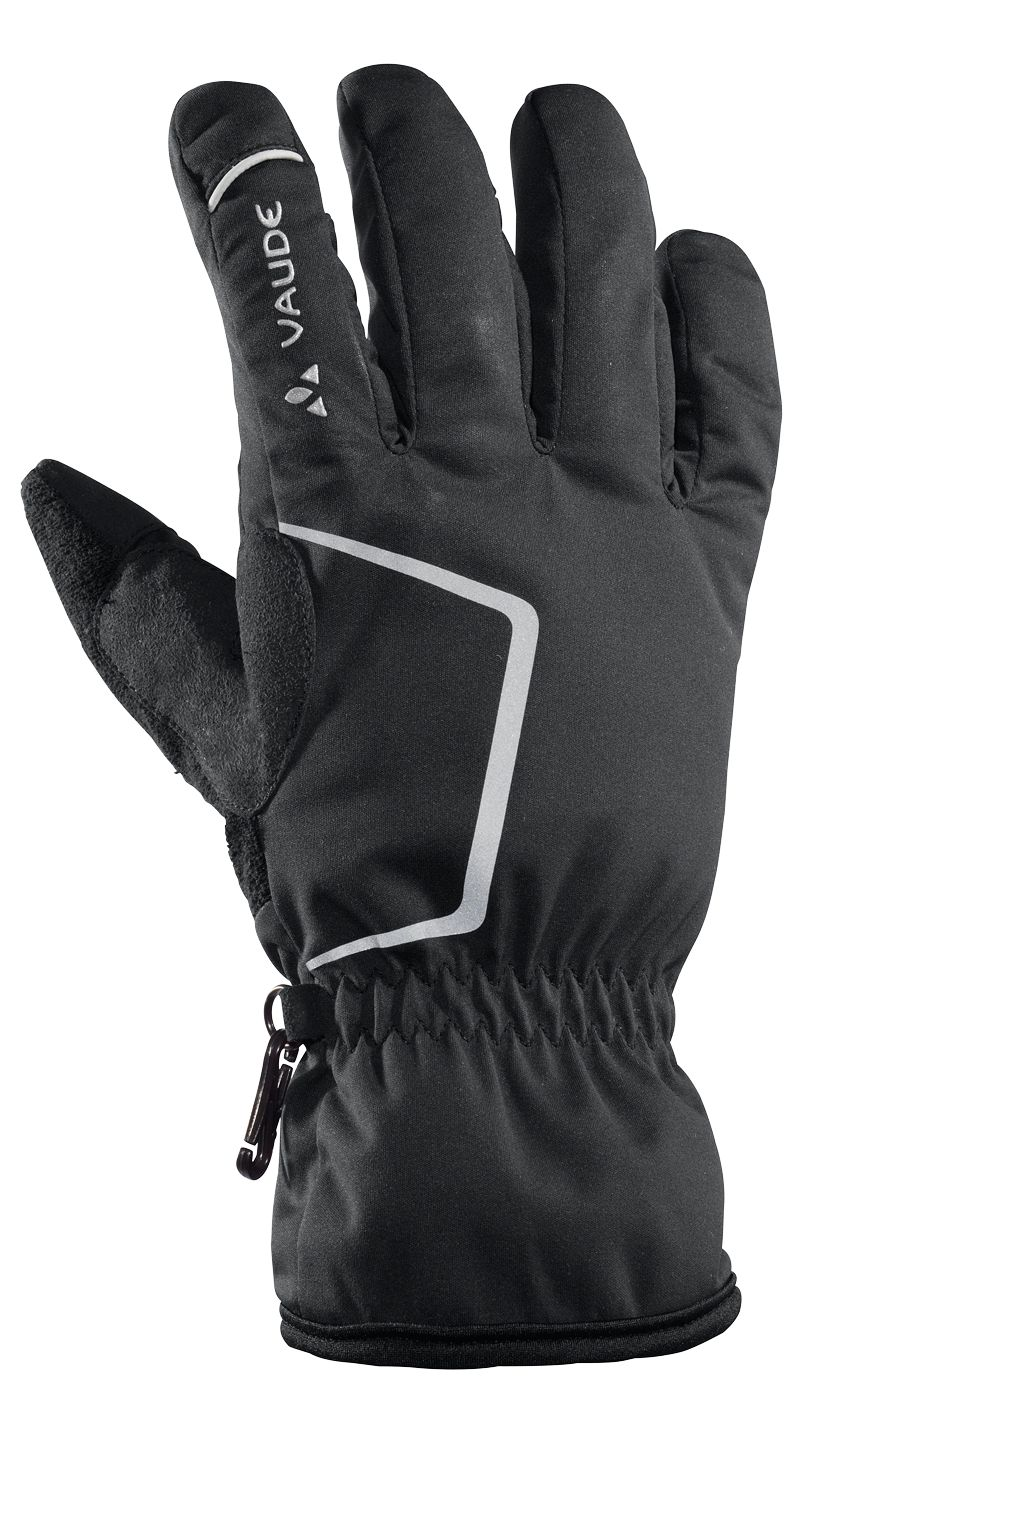 Vaude Crims Gloves Softshell Handschuhe schwarz Gr. 8-10